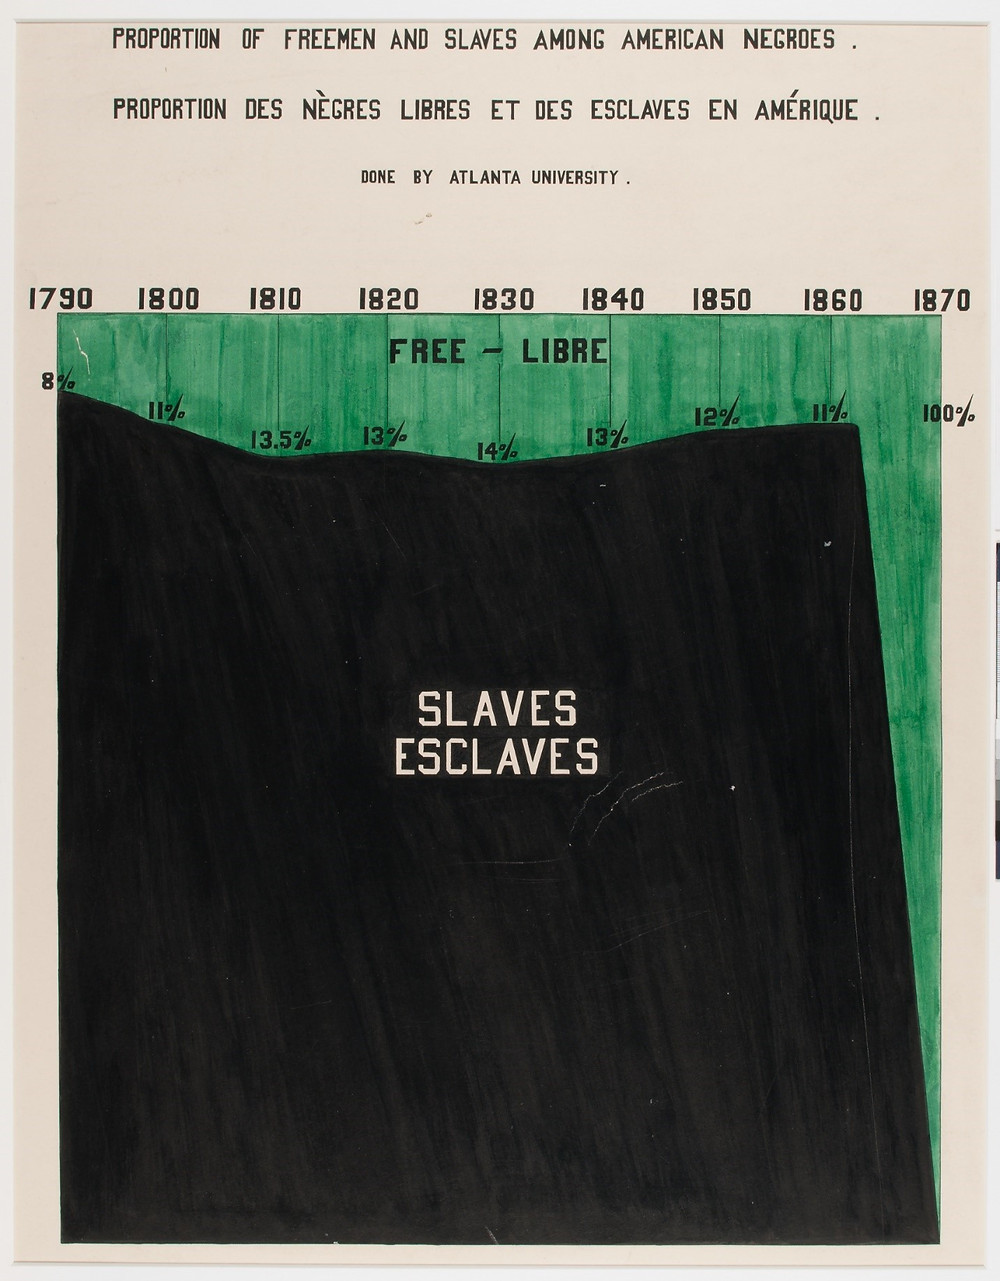 Stacked area chart where proportion of free versus enslaved Black Americans is presented from 11790 to 1870. Only 8-14% of Black Americans were free every year until 1870, when they were all free.